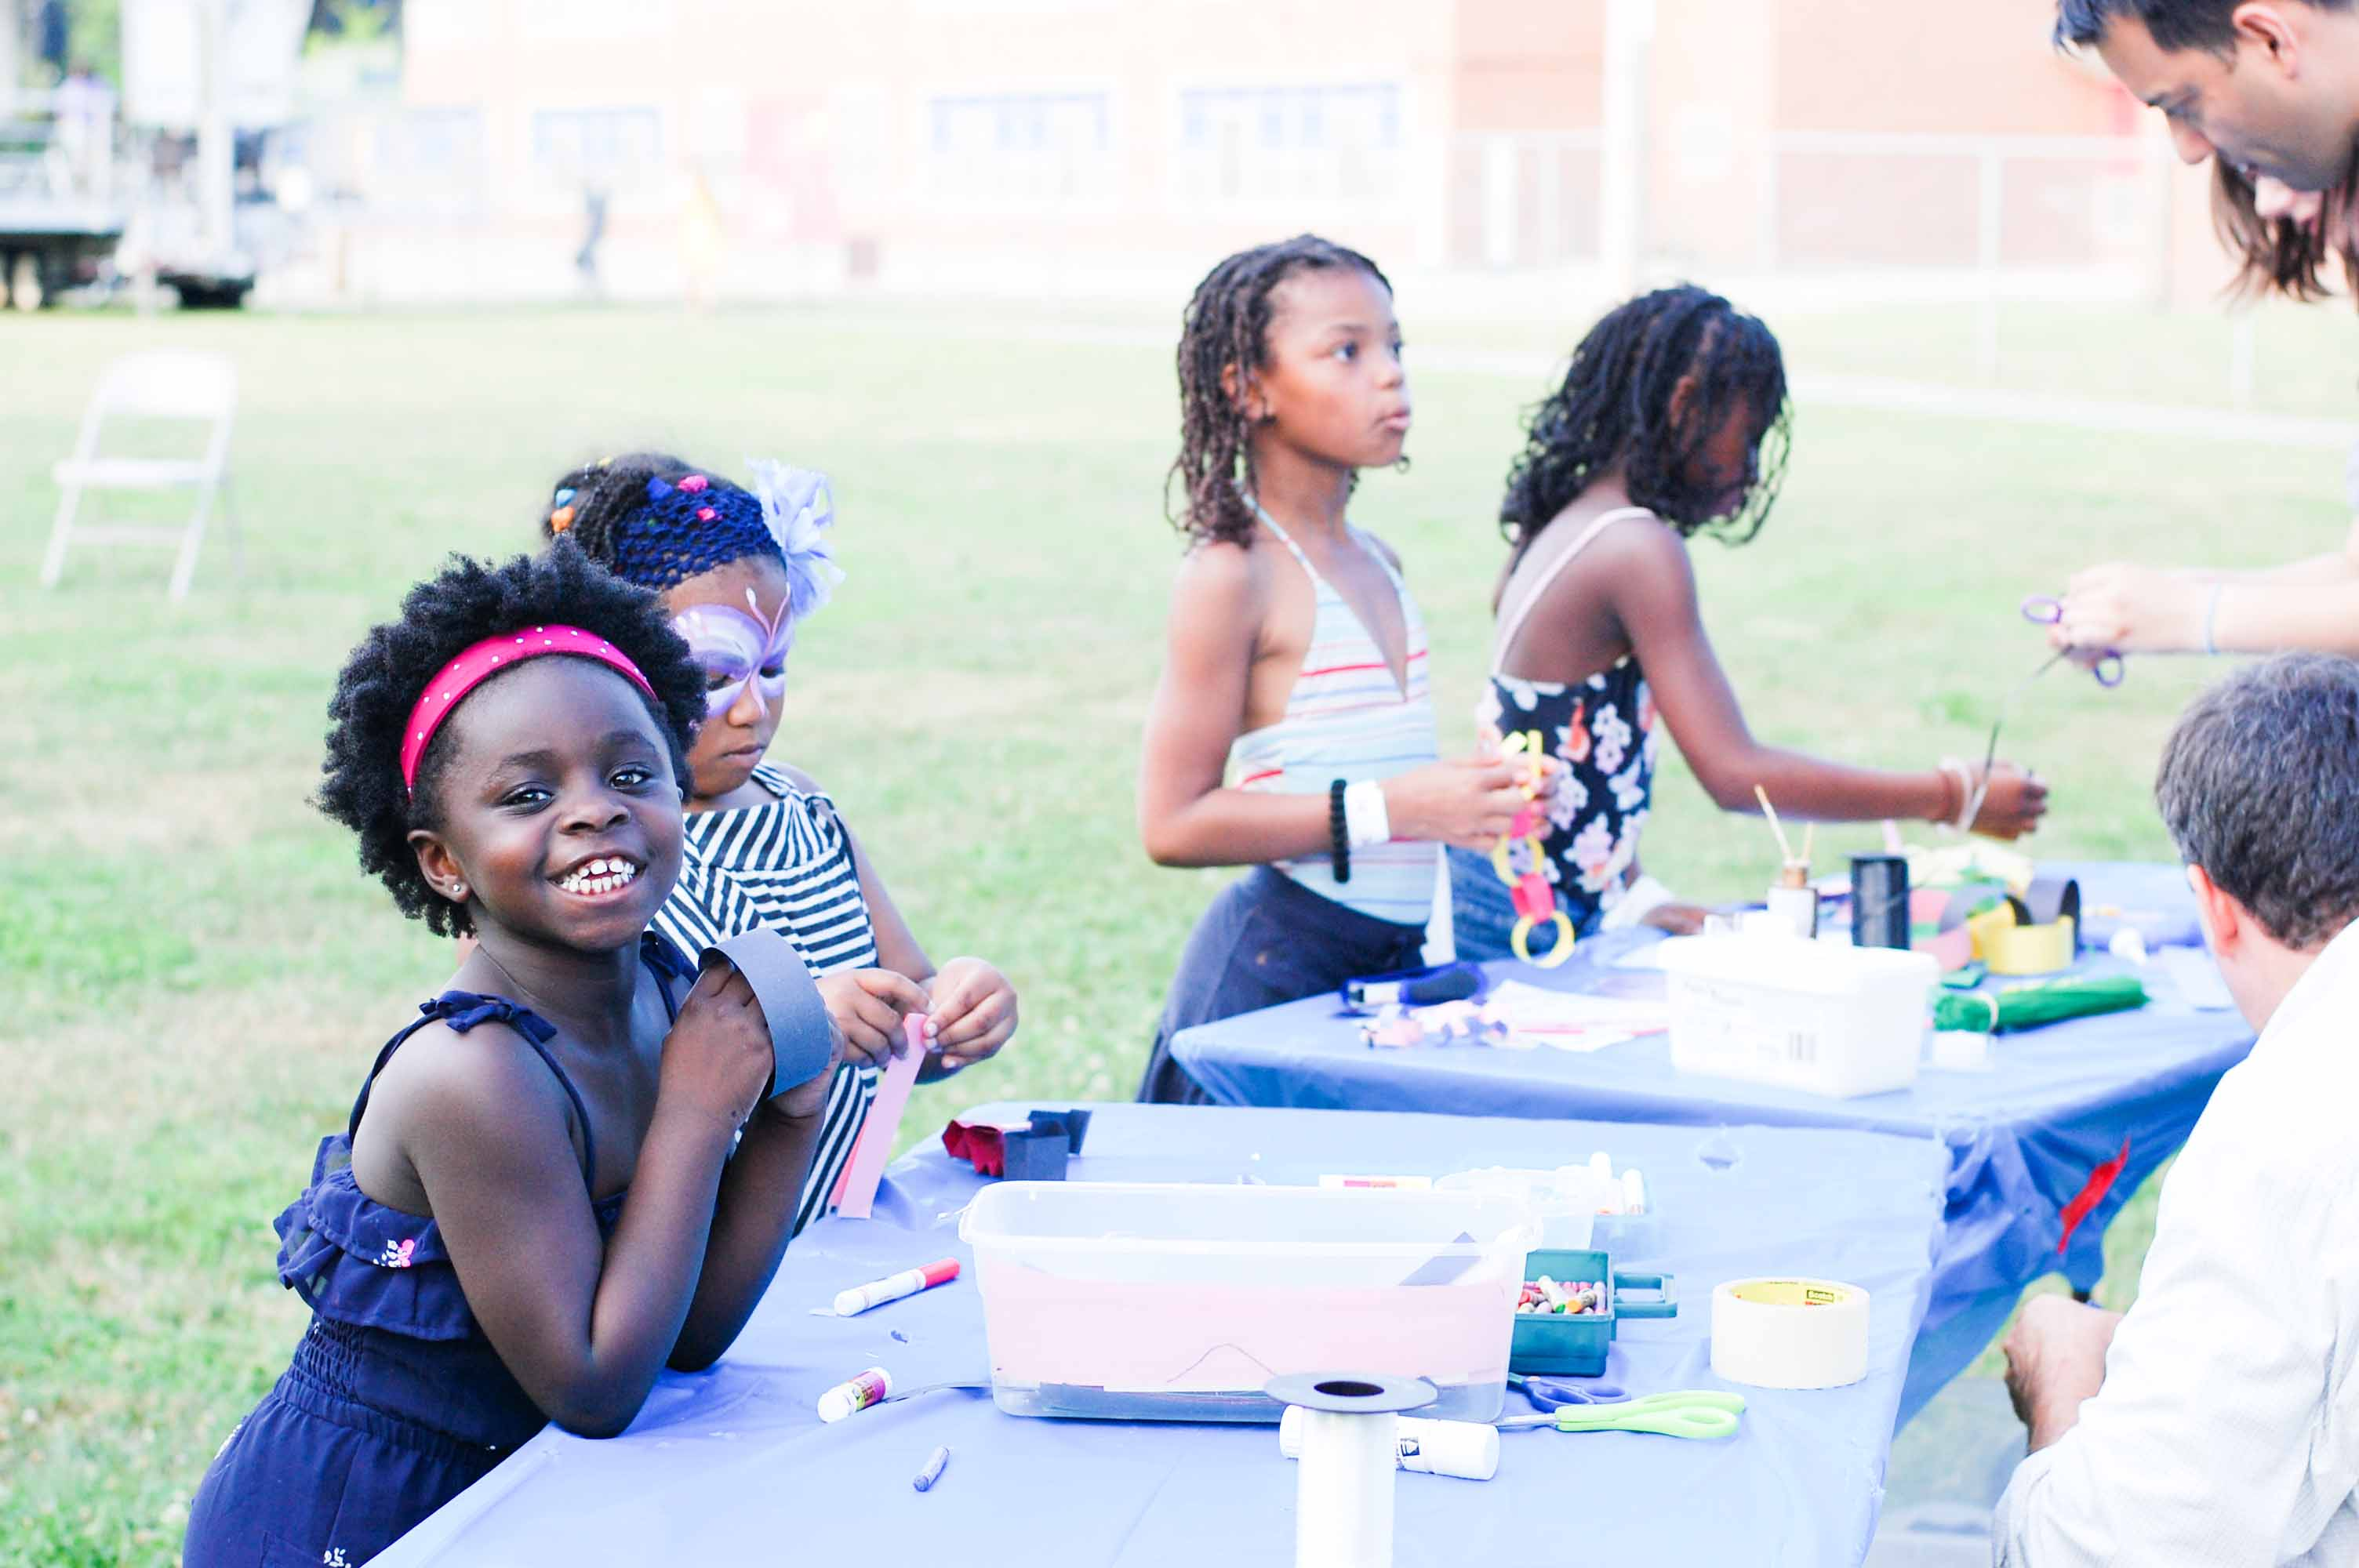 Many NPAI events have arts and crafts for kids